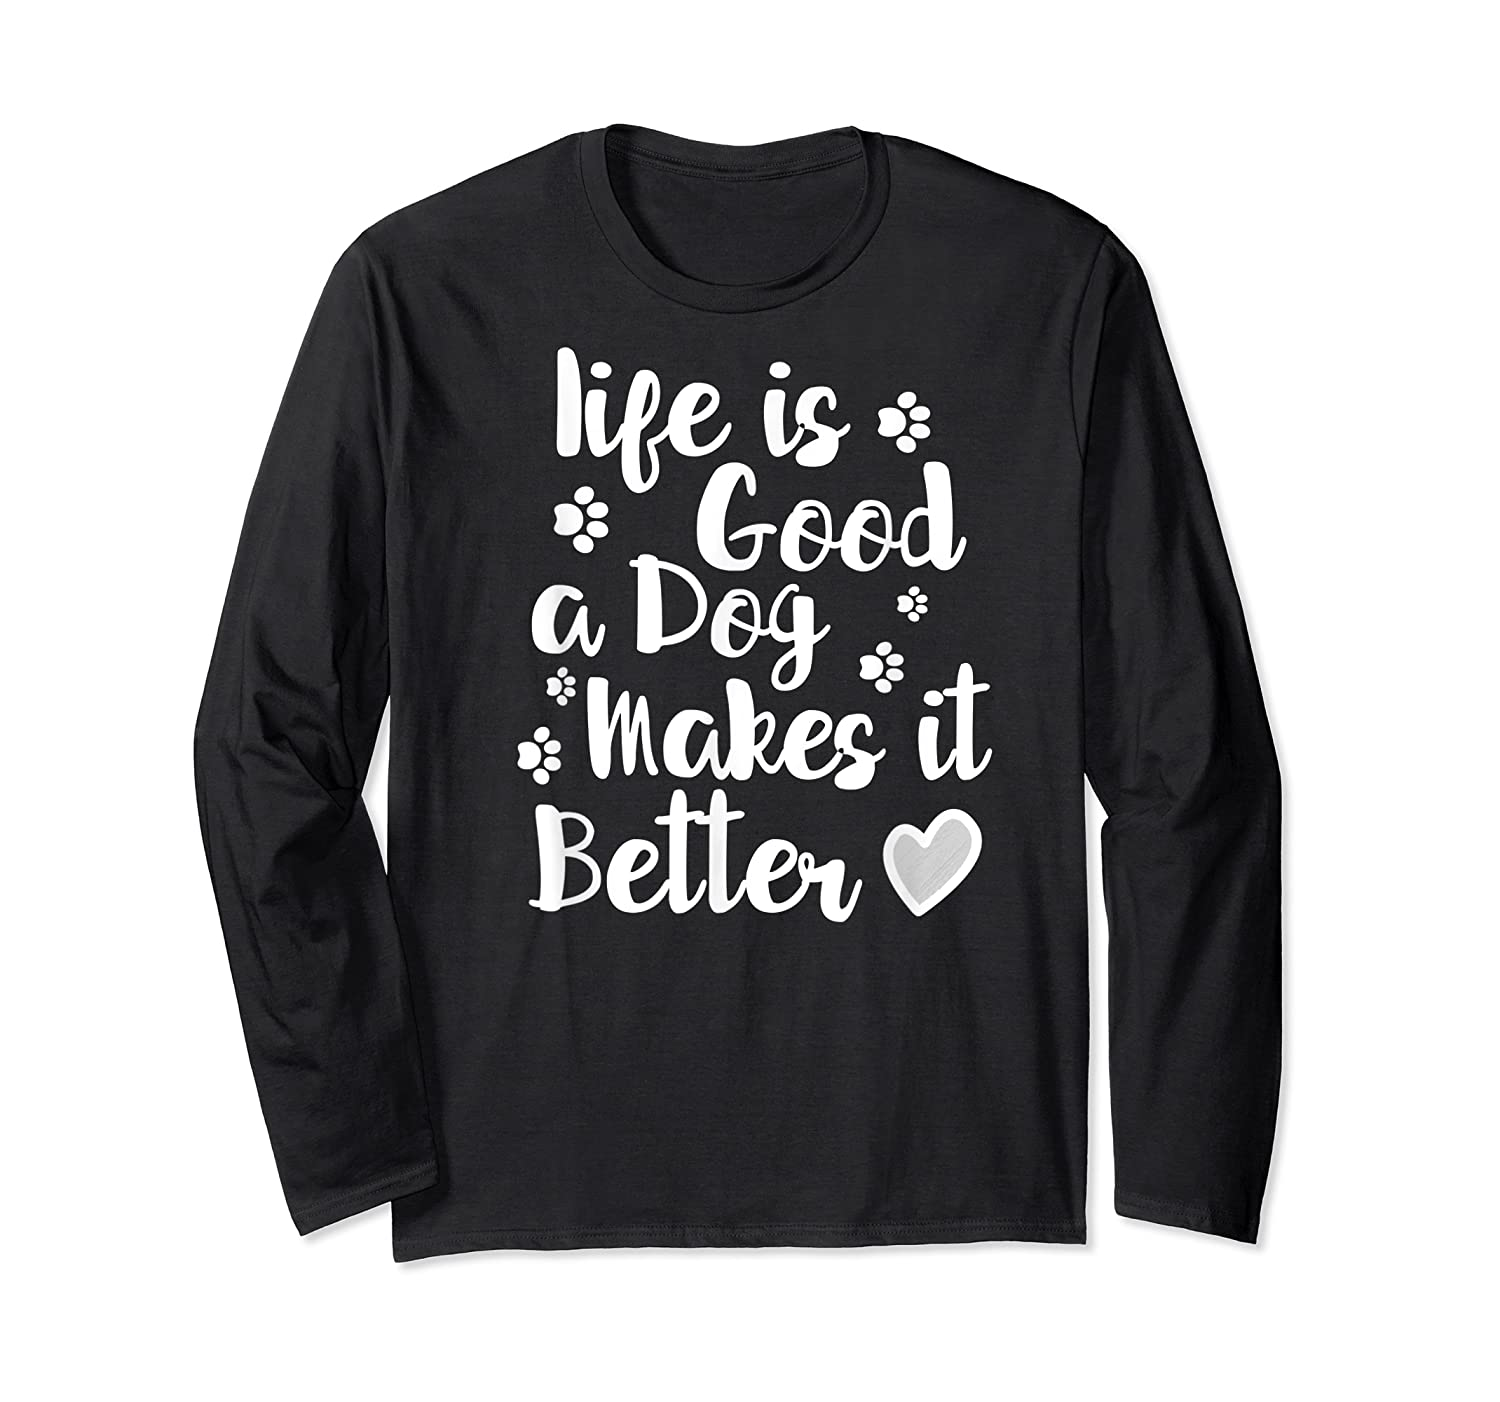 A Dog Makes It Better For Dog Lovers Tshirt T-shirt Long Sleeve T-shirt